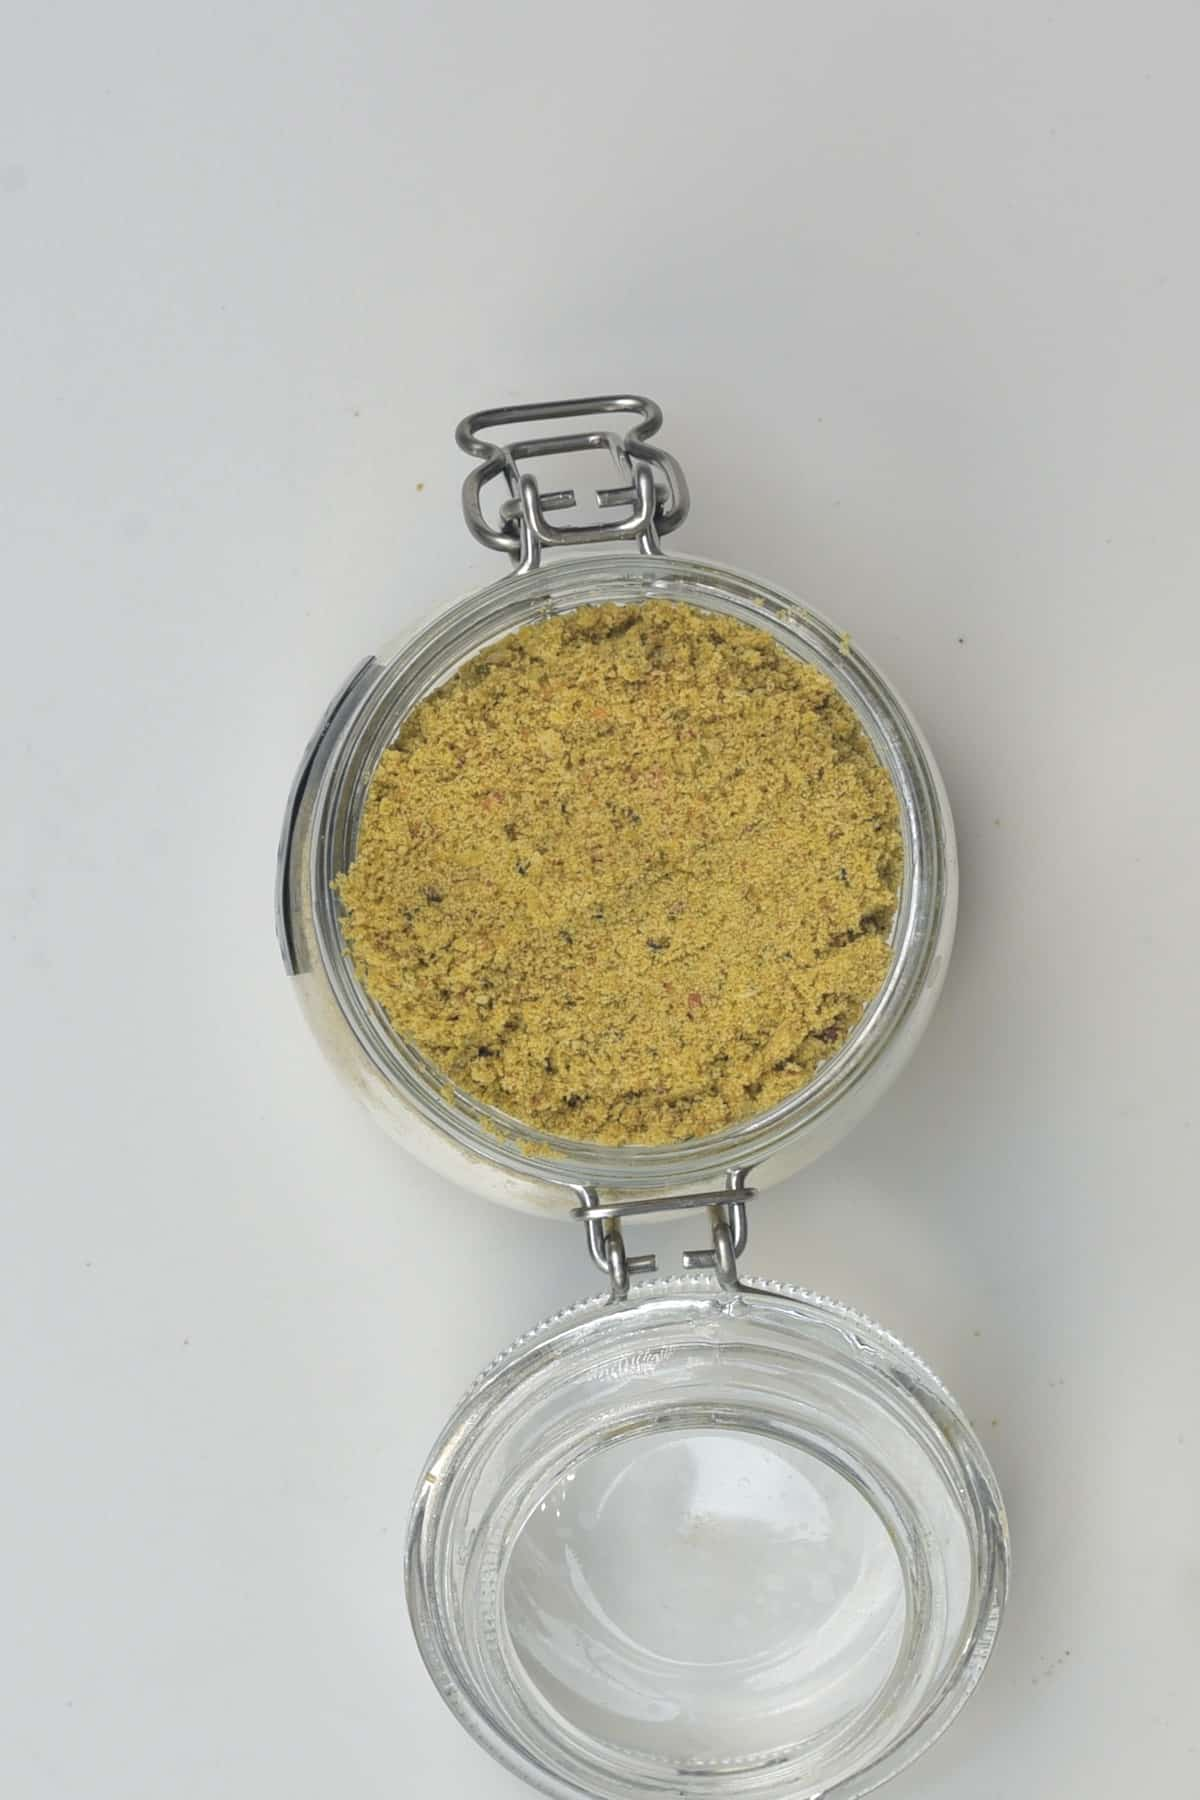 A jar with powdered vegetable stock